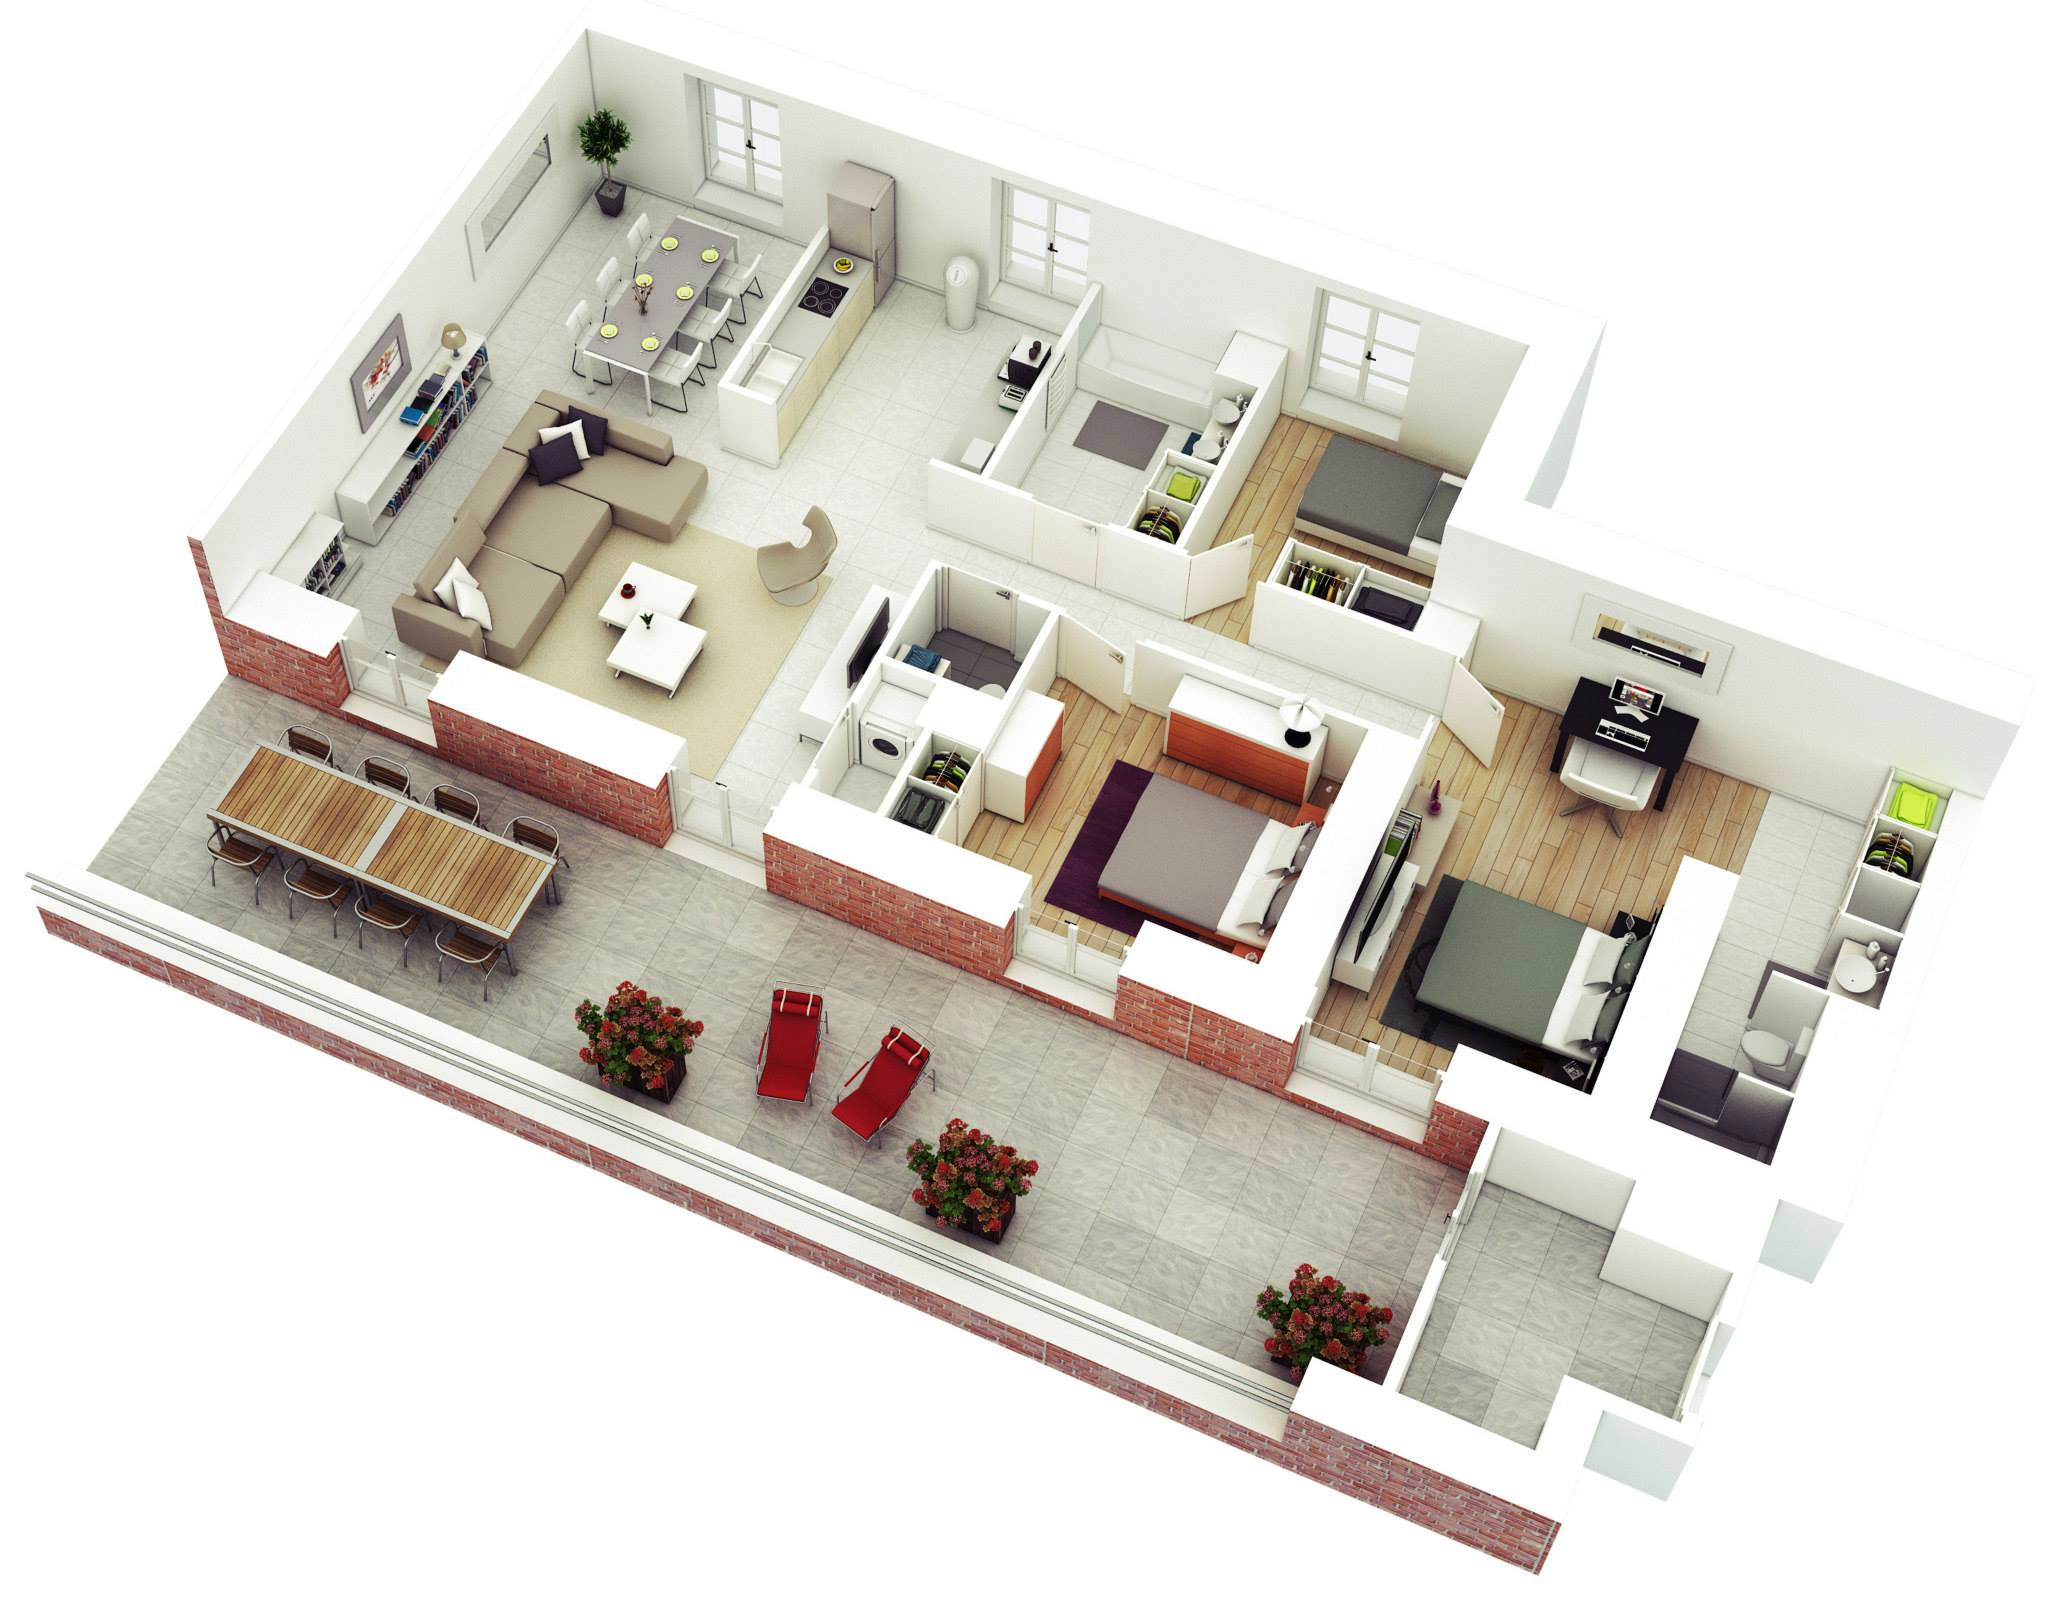 25 more 3 bedroom 3d floor plans - Home Design Floor Plans Free